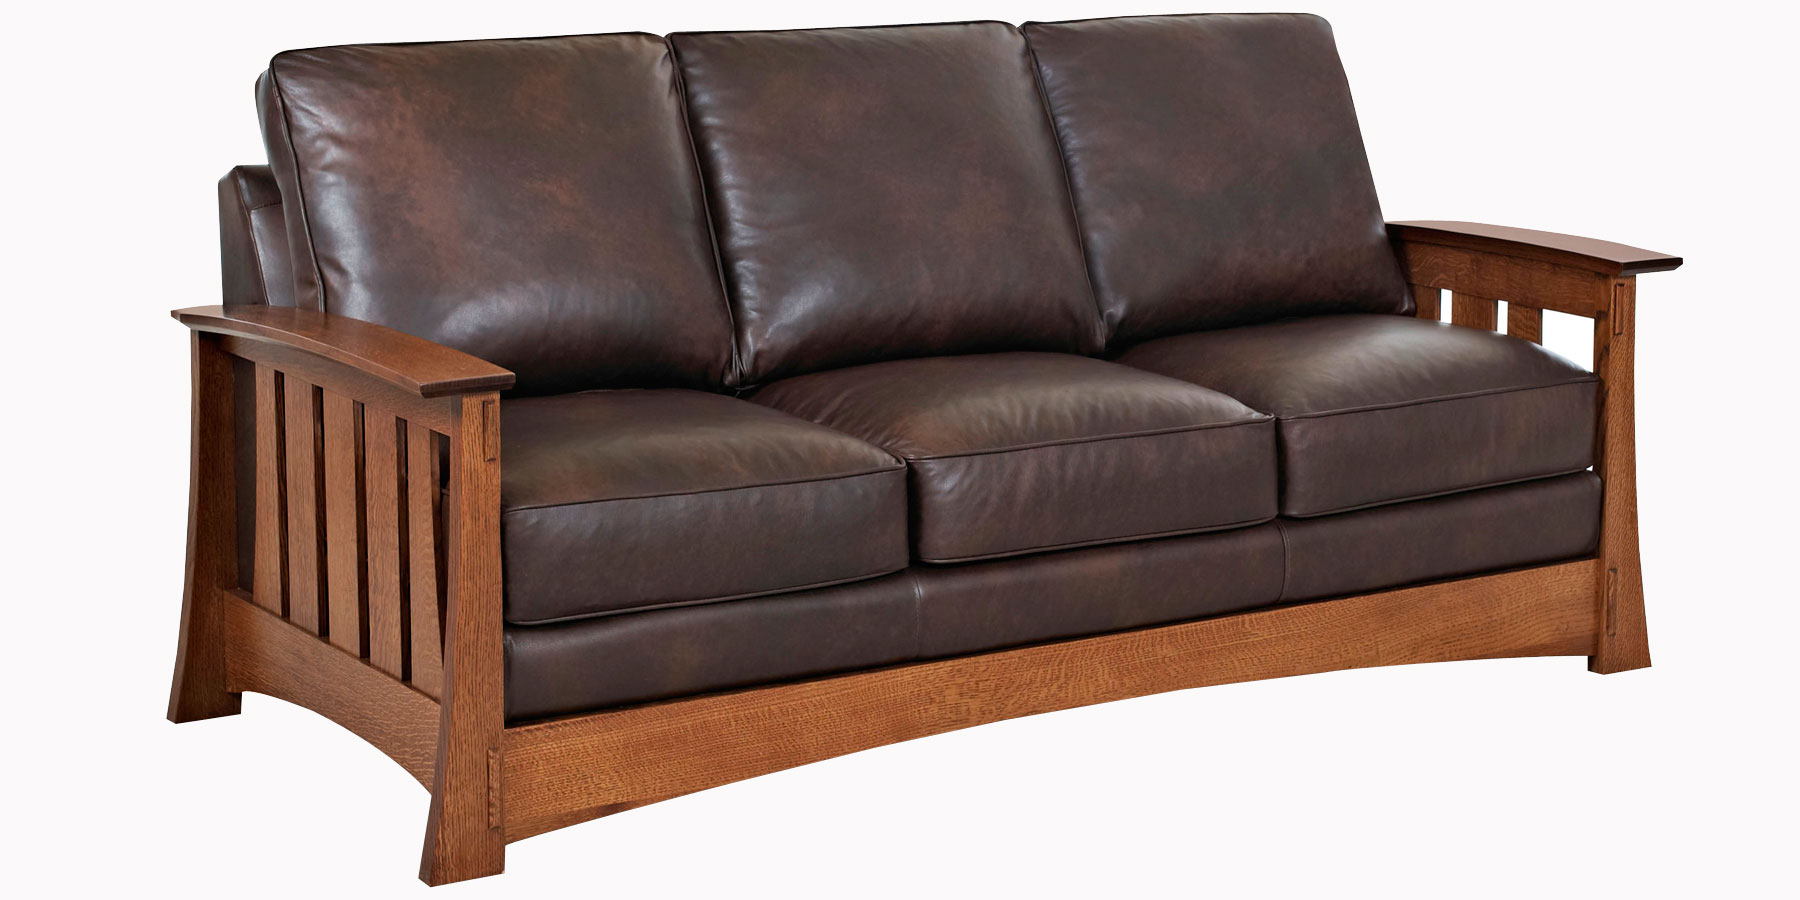 Mission style leather pillow back living room seating for Mission style furniture